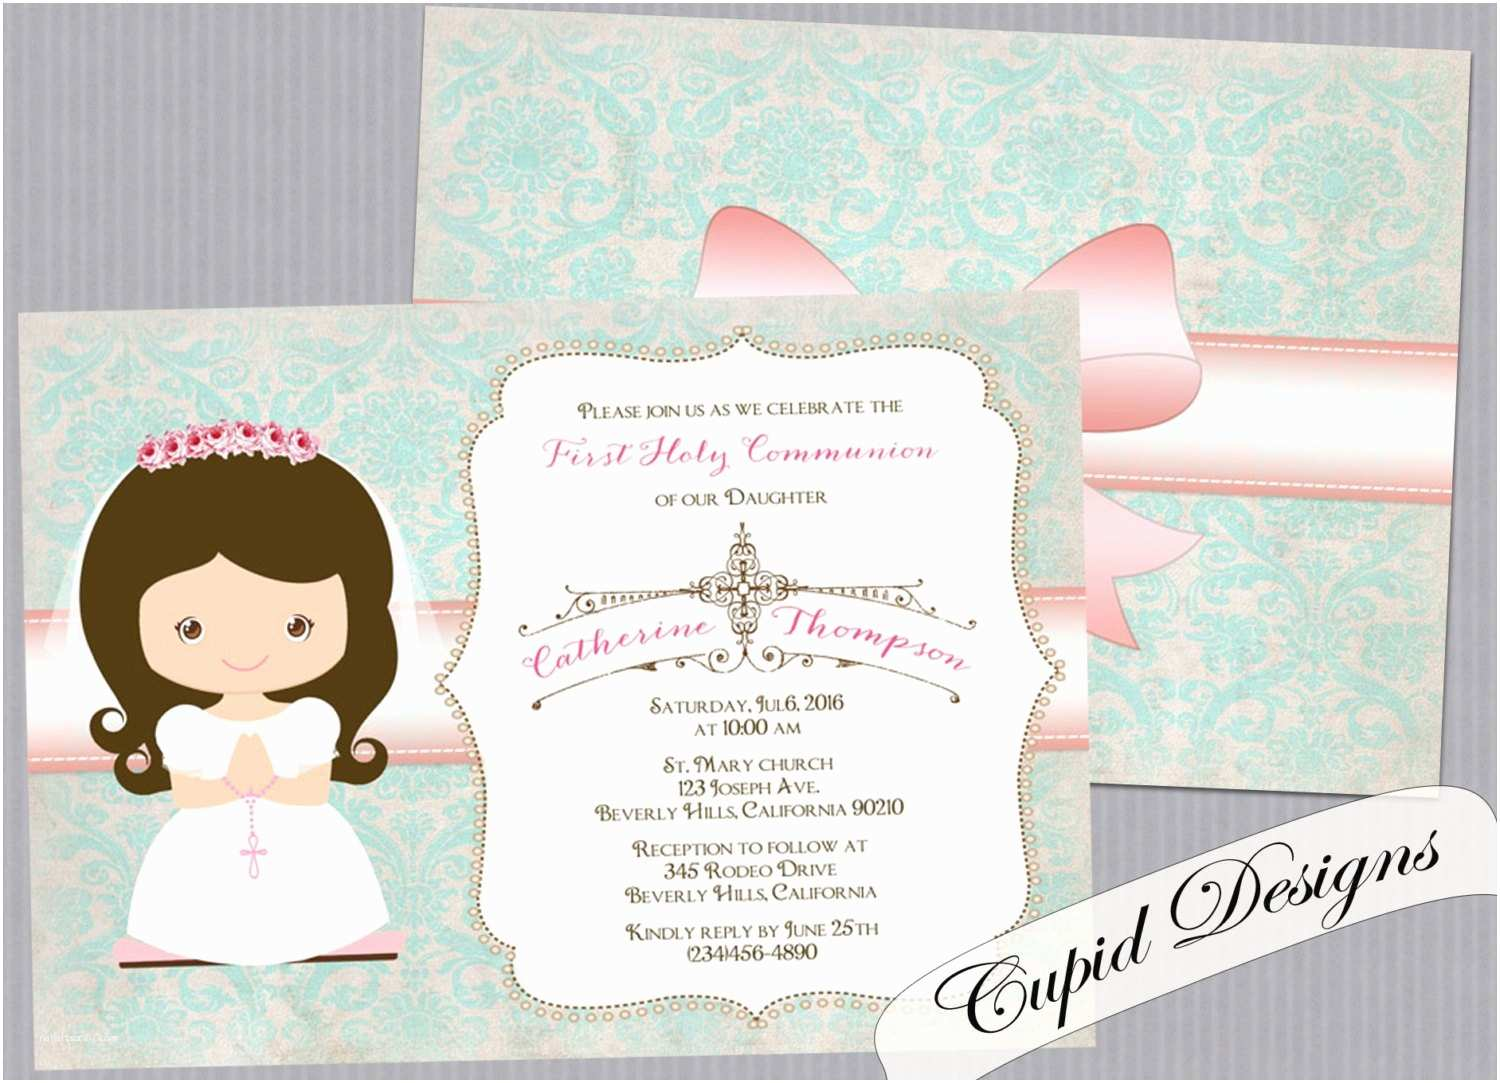 First Communion Invitations for Girls Girl First Munion Invitation Invitation for First Holy